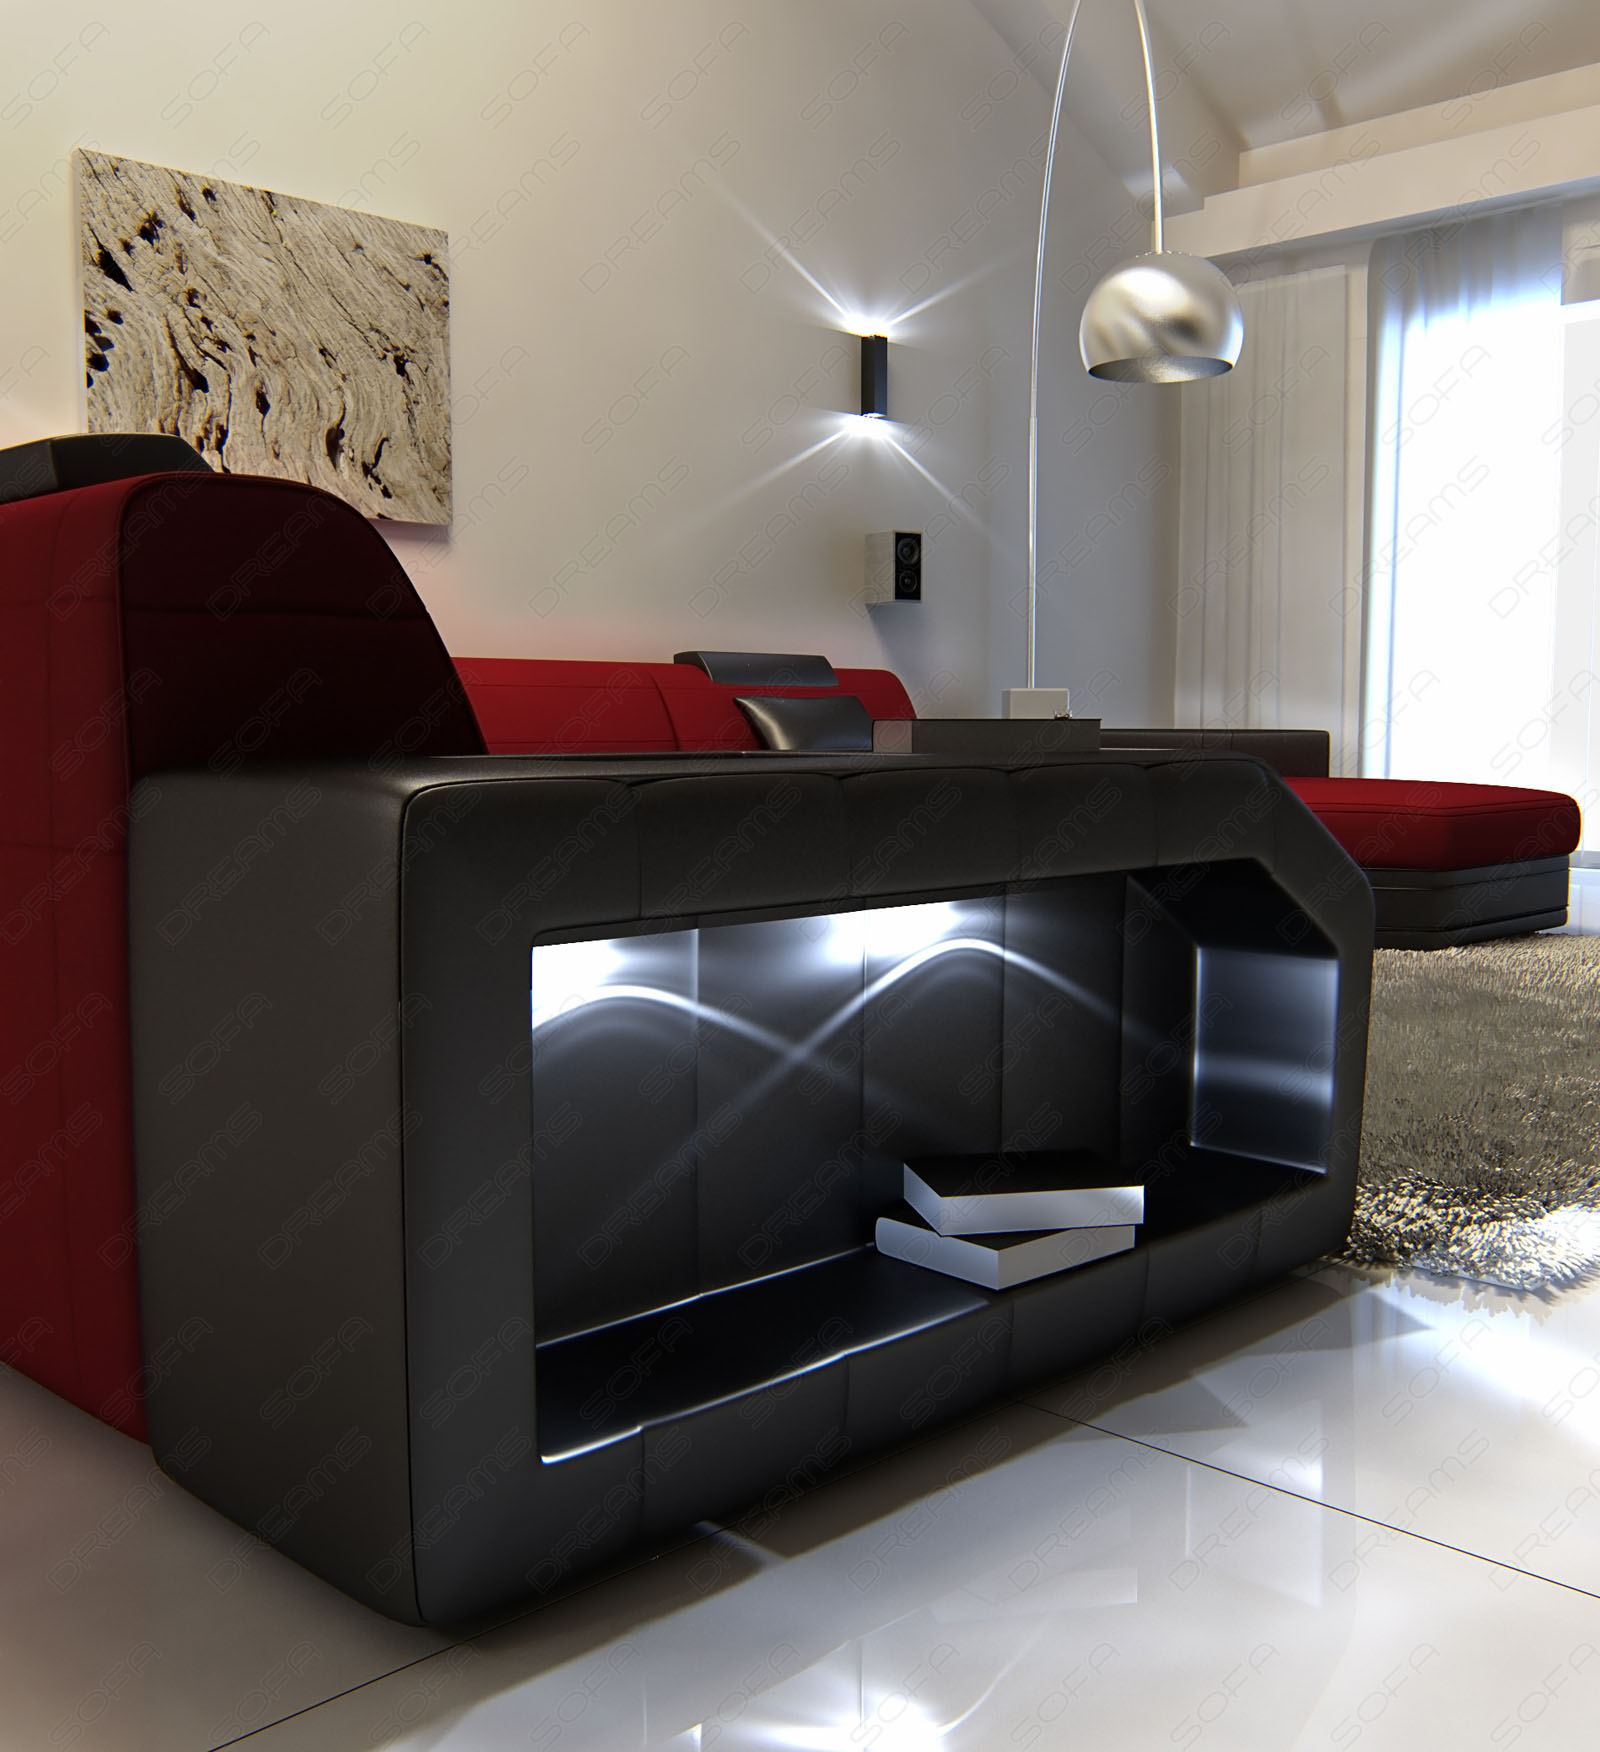 pigmentflecken gesicht entfernen k ln l sungen. Black Bedroom Furniture Sets. Home Design Ideas